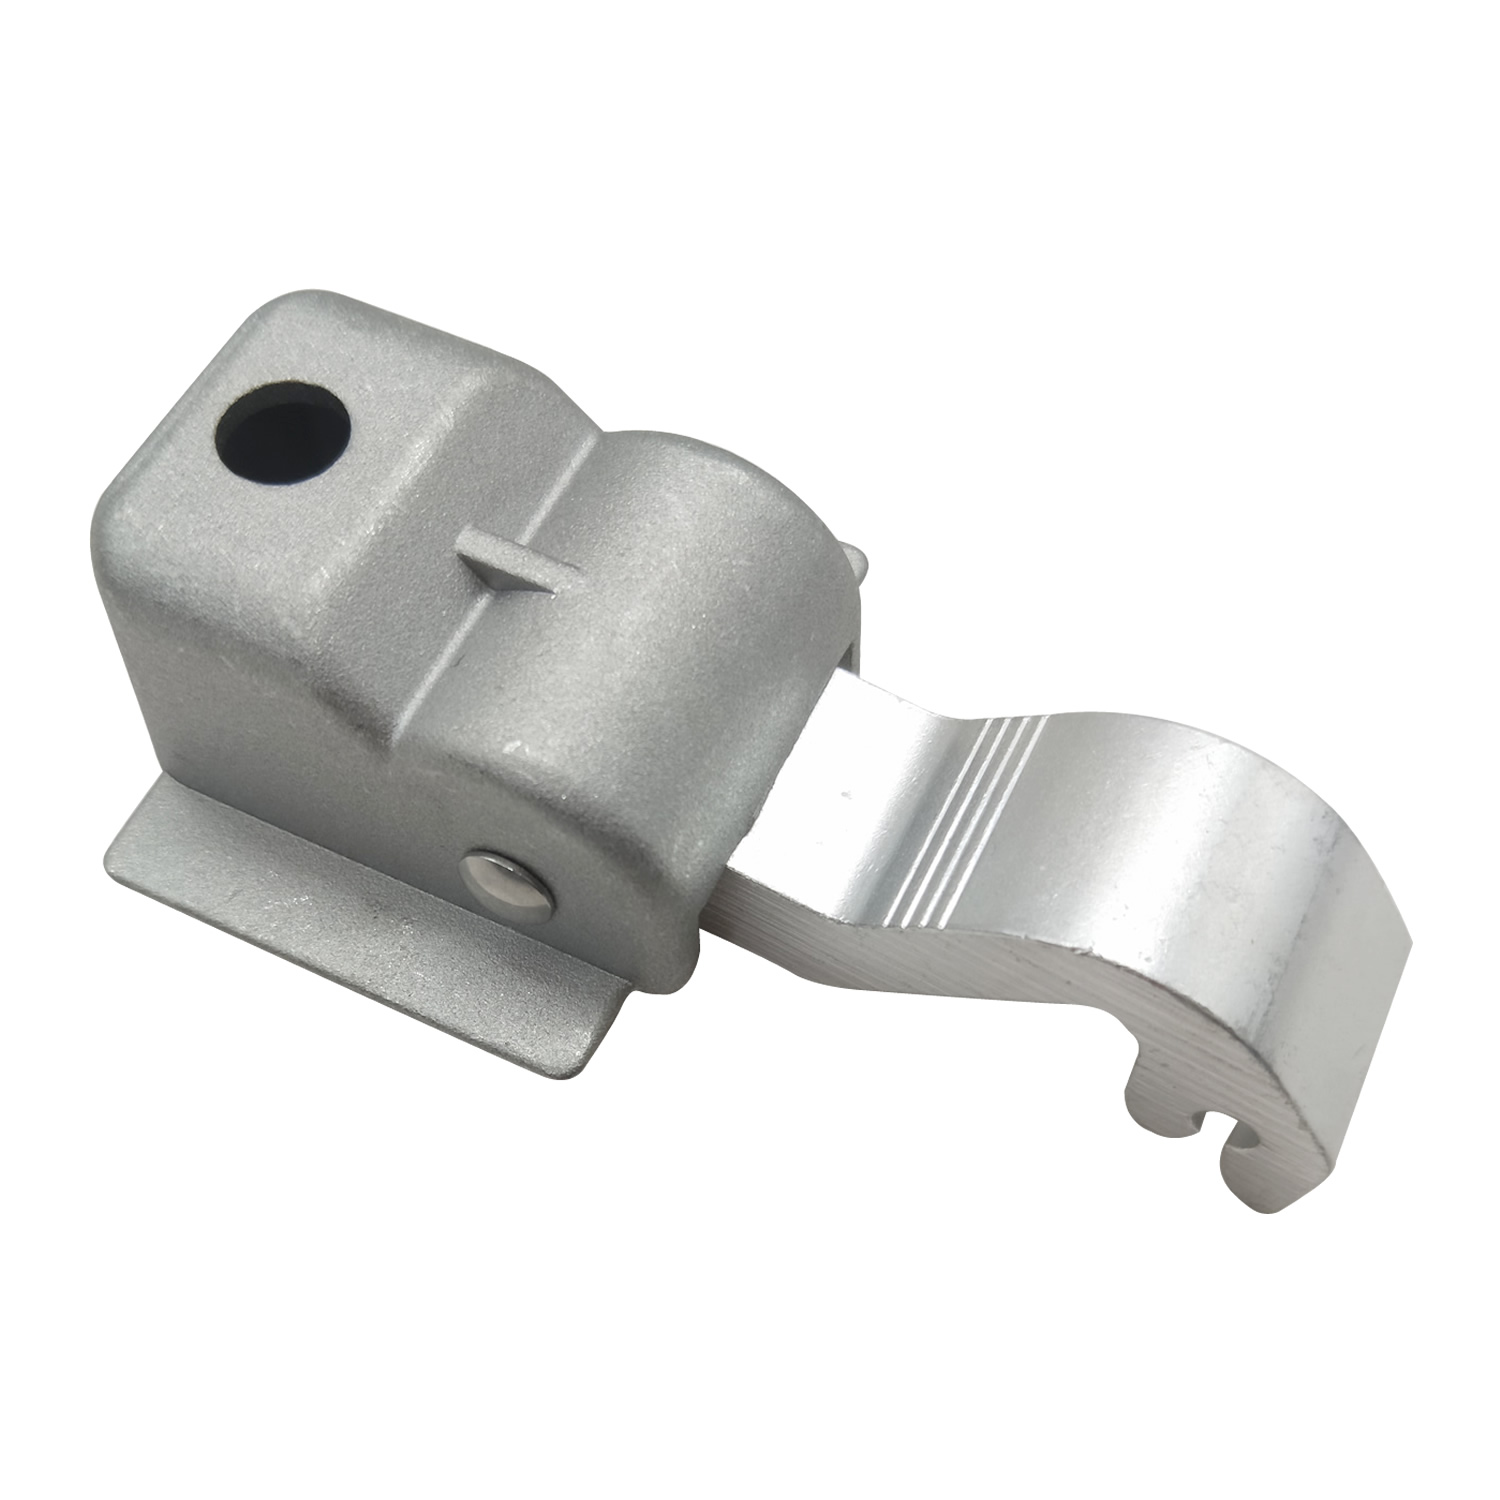 Awning Slider Assembly for Dometic A/&E Awnings